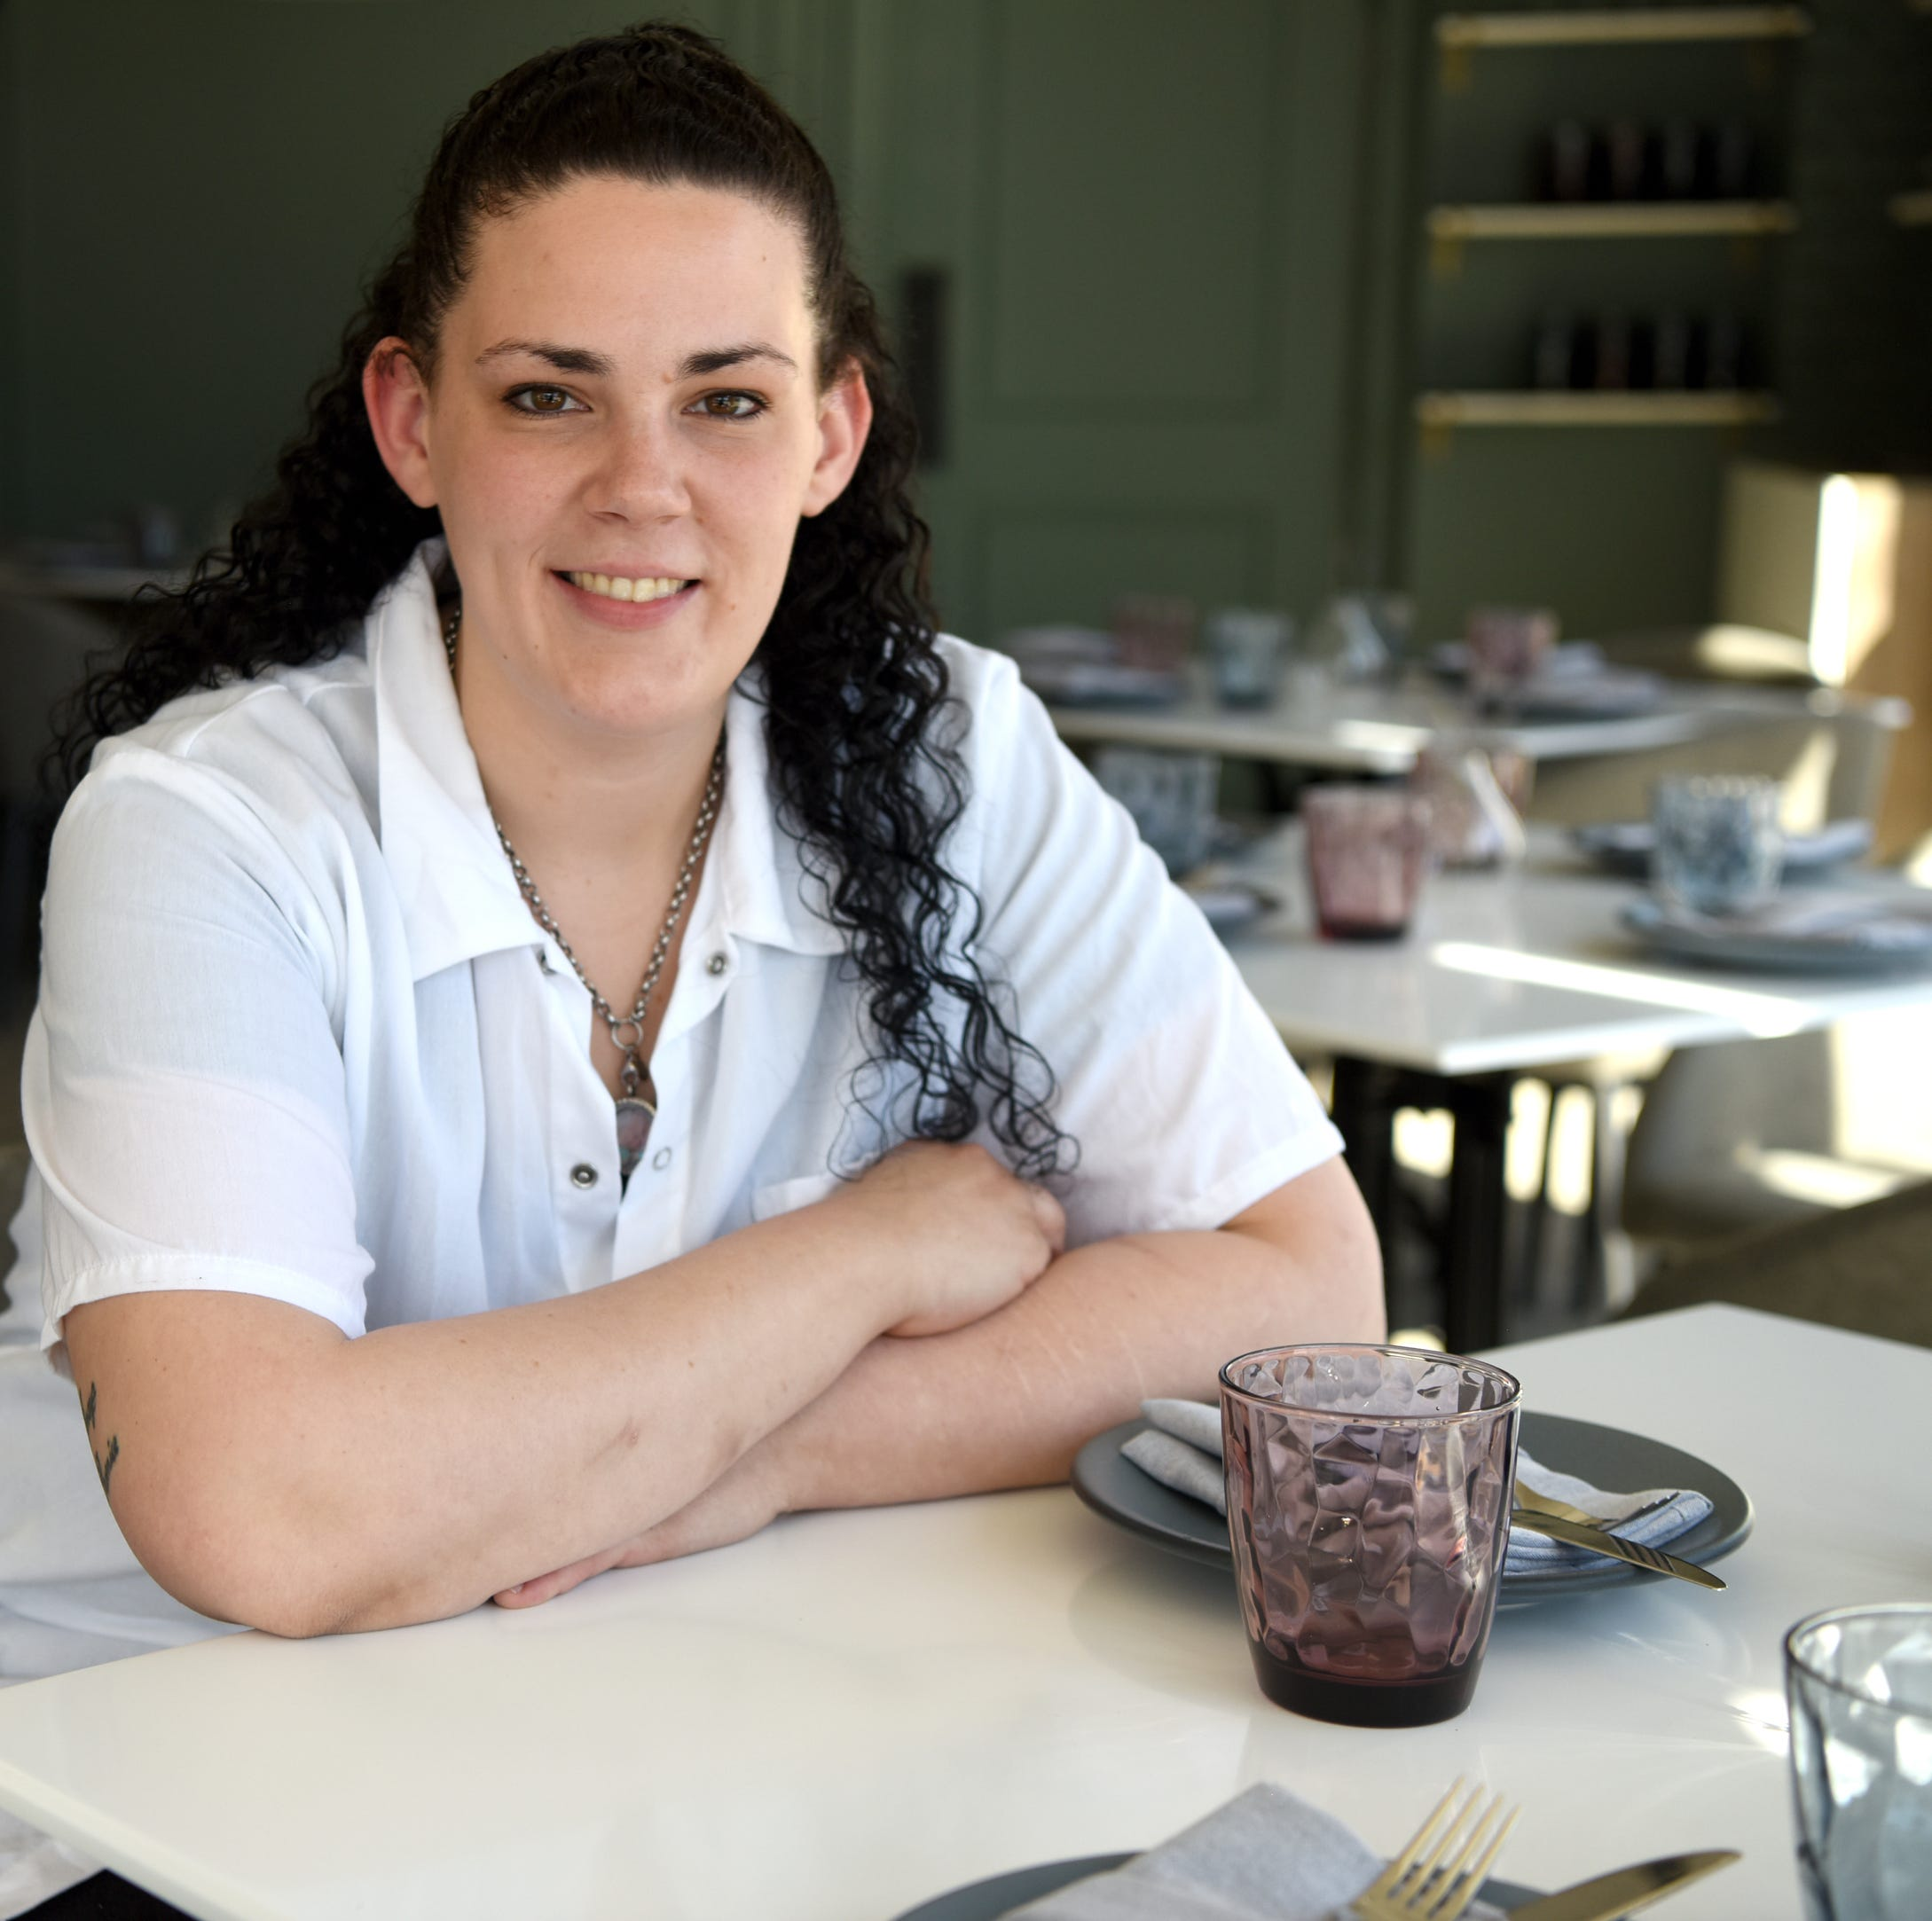 'Drugs take everything from you': Haledon woman makes a comeback as fine-dining pasta chef